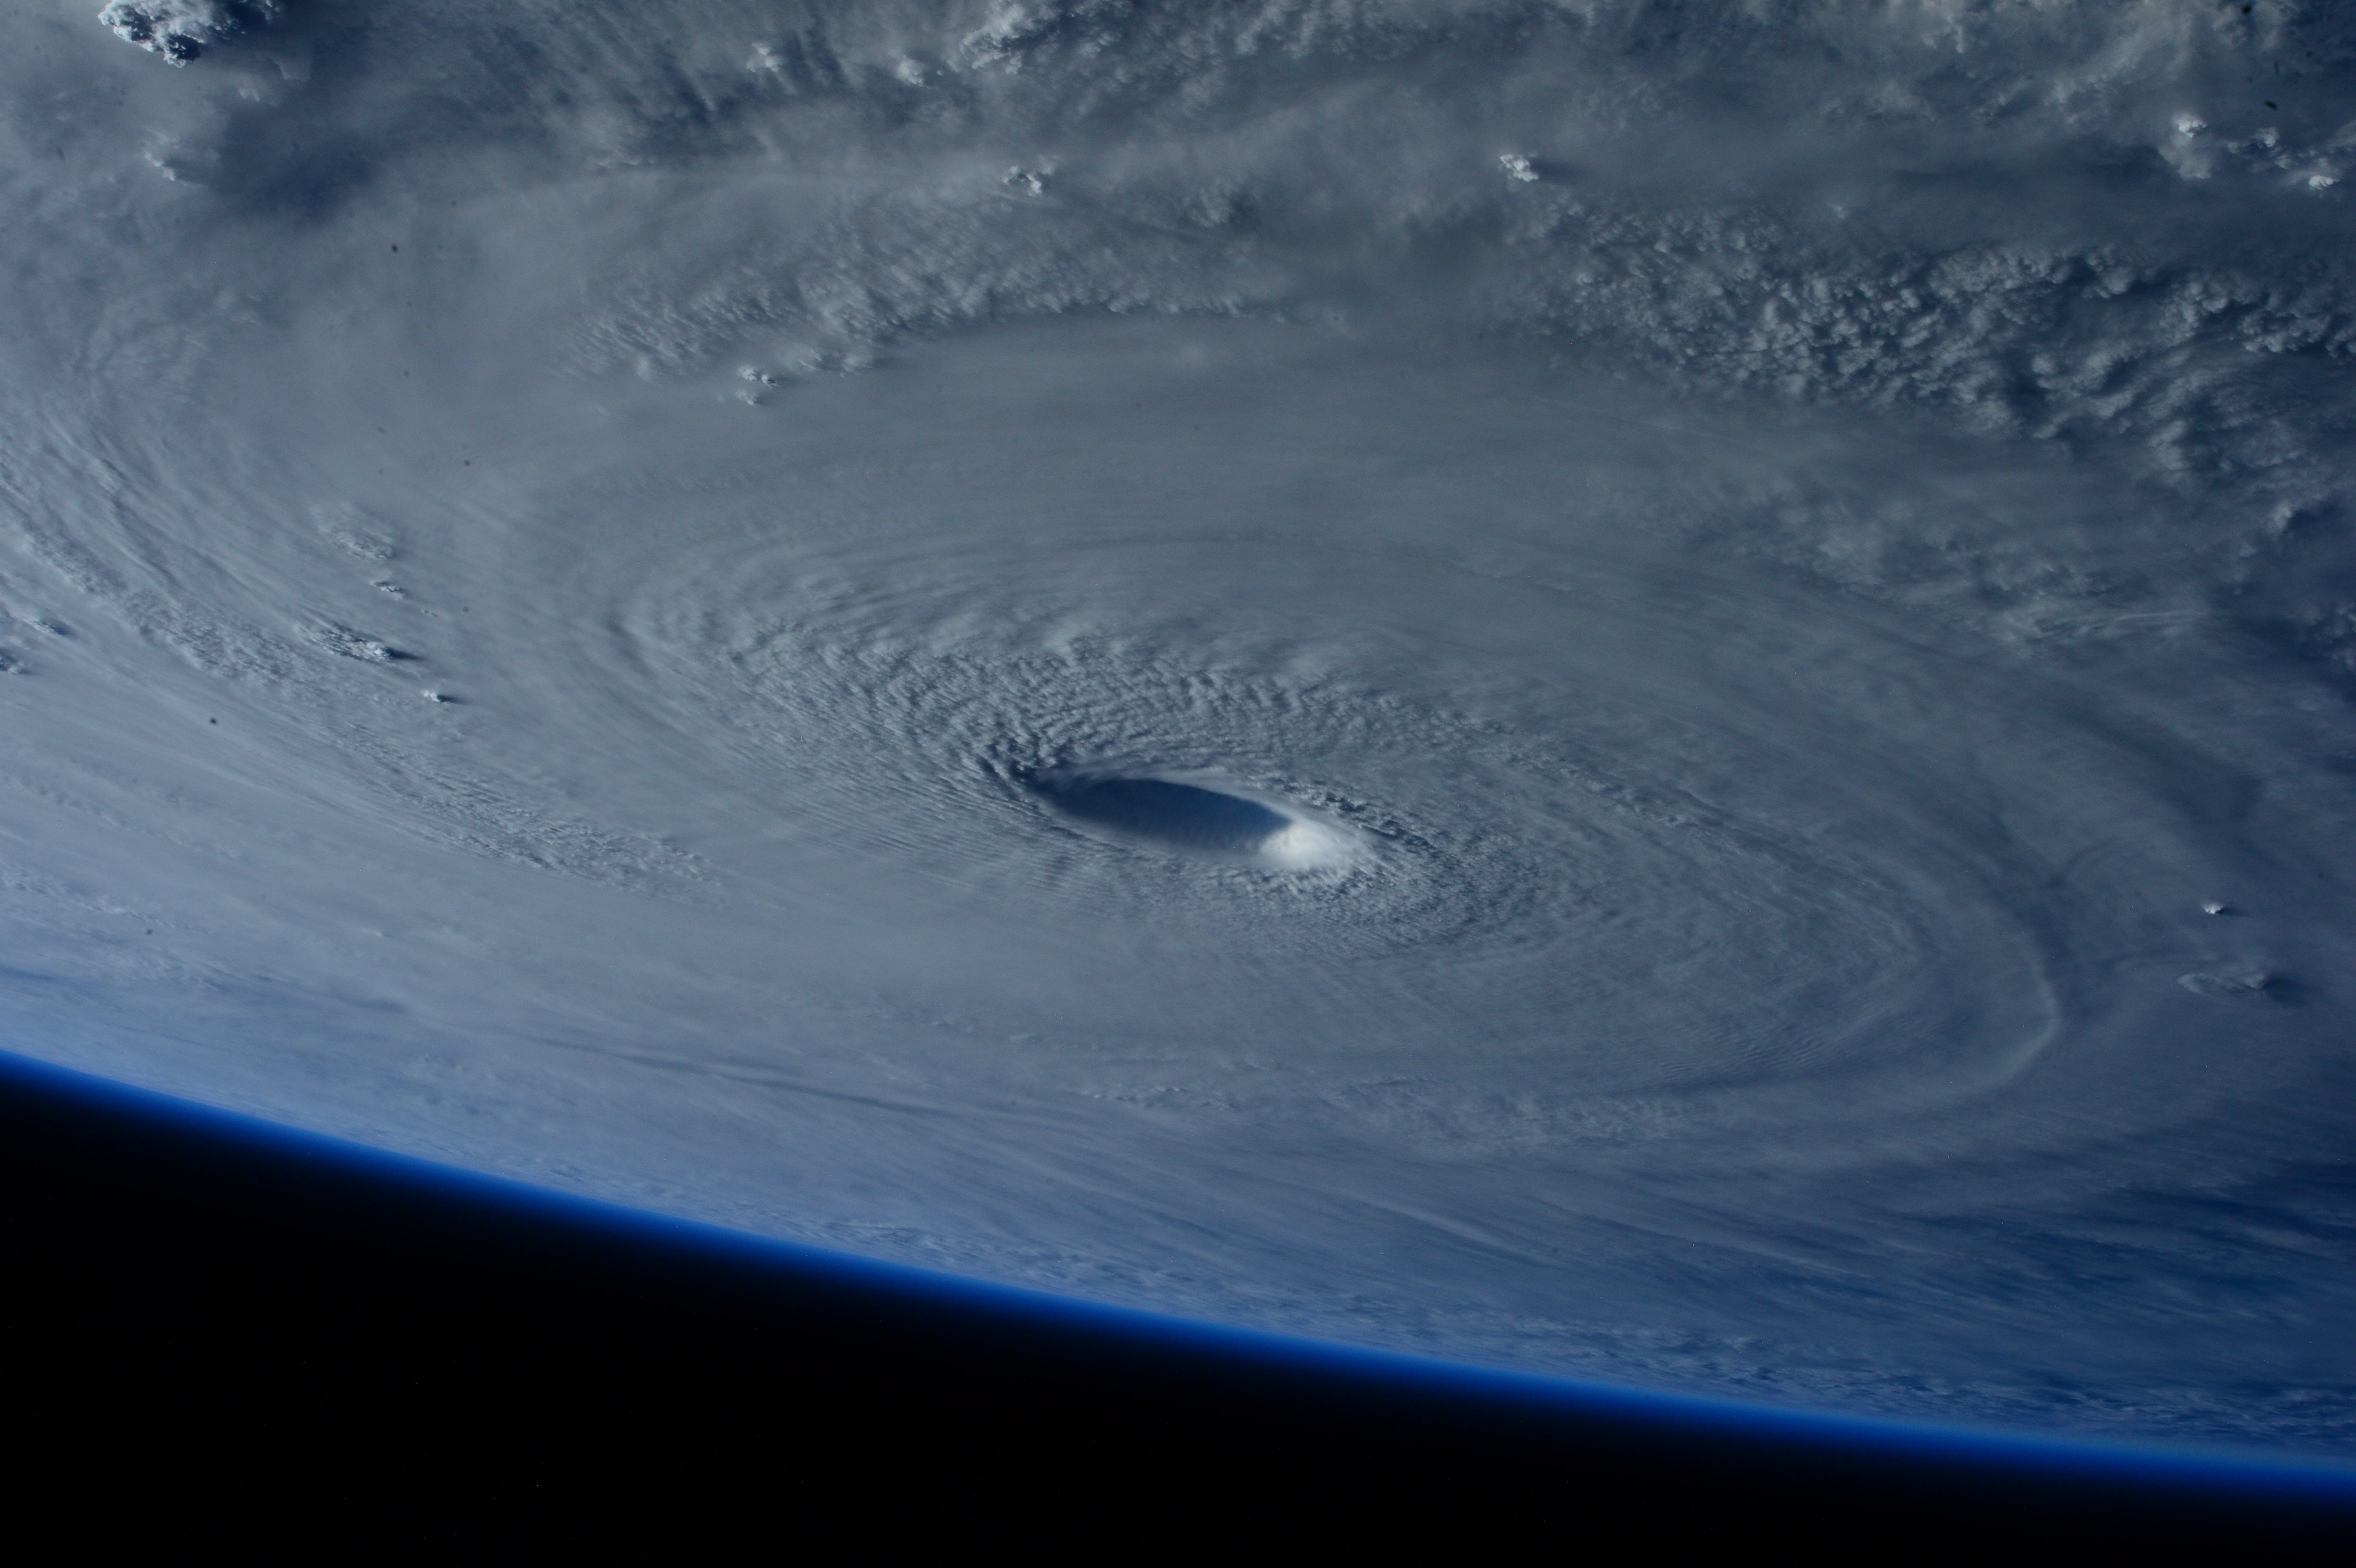 A giant hurricane as viewed from space.